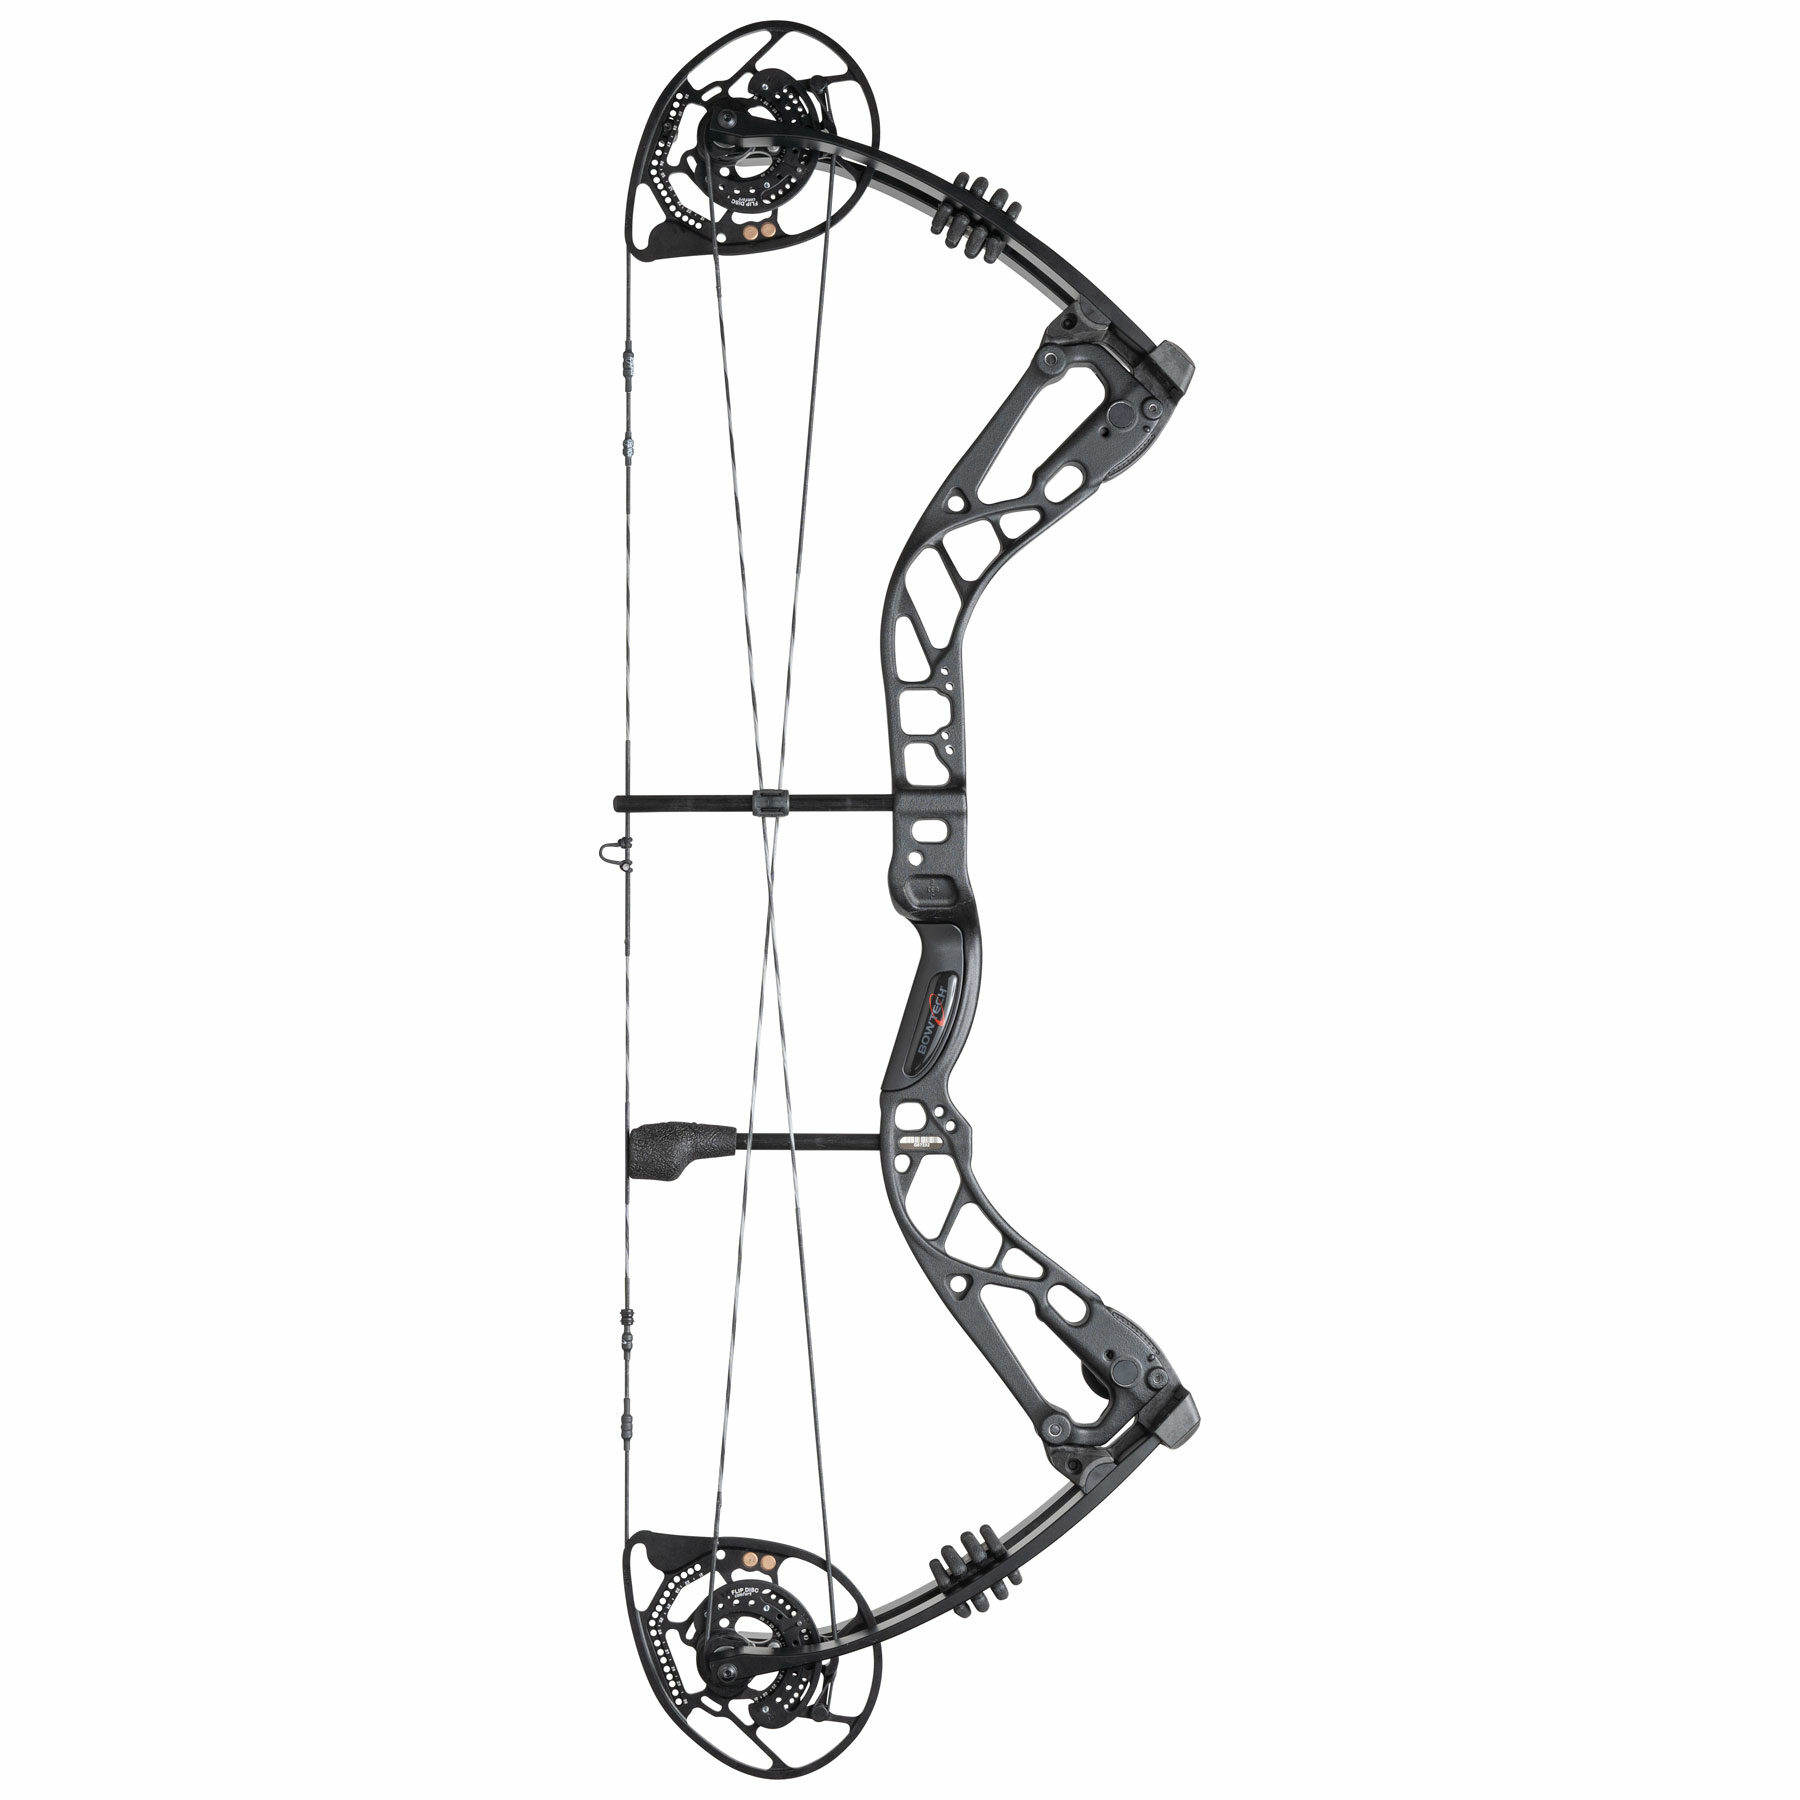 Amplify black archery compound bow